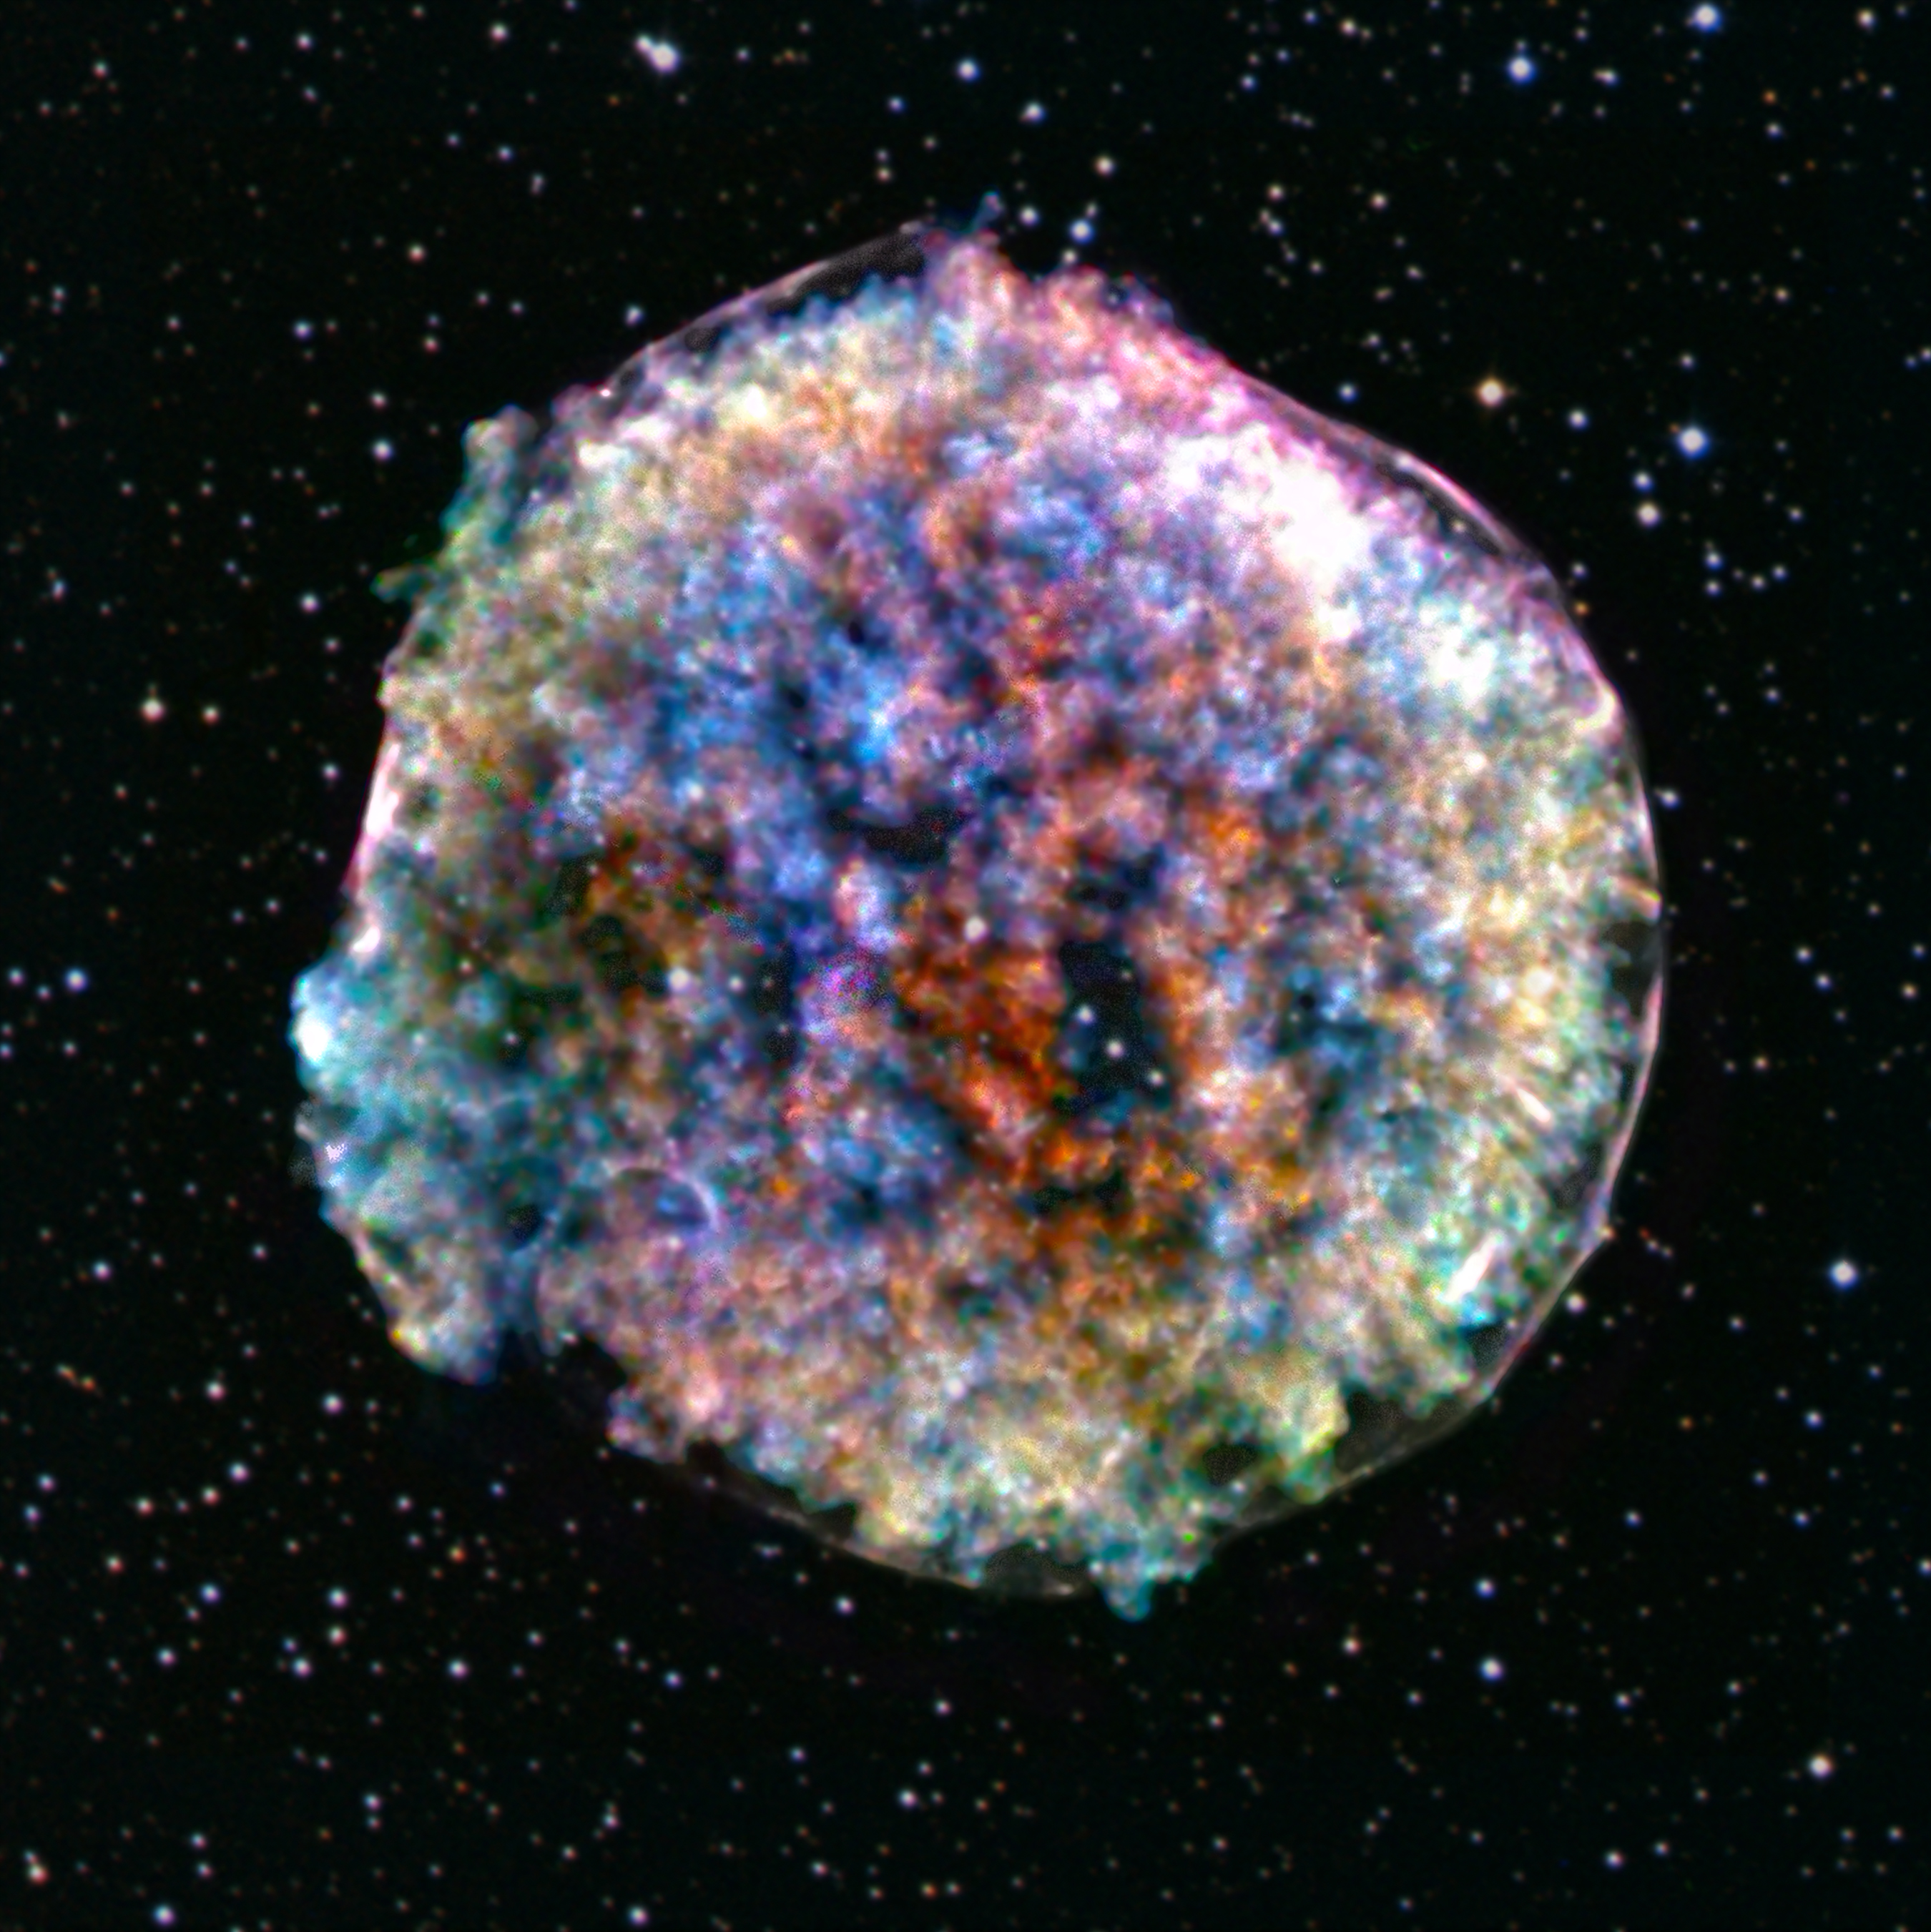 Bild: X-ray: NASA/CXC/RIKEN & GSFC/T. Sato et al; Optical: DSS